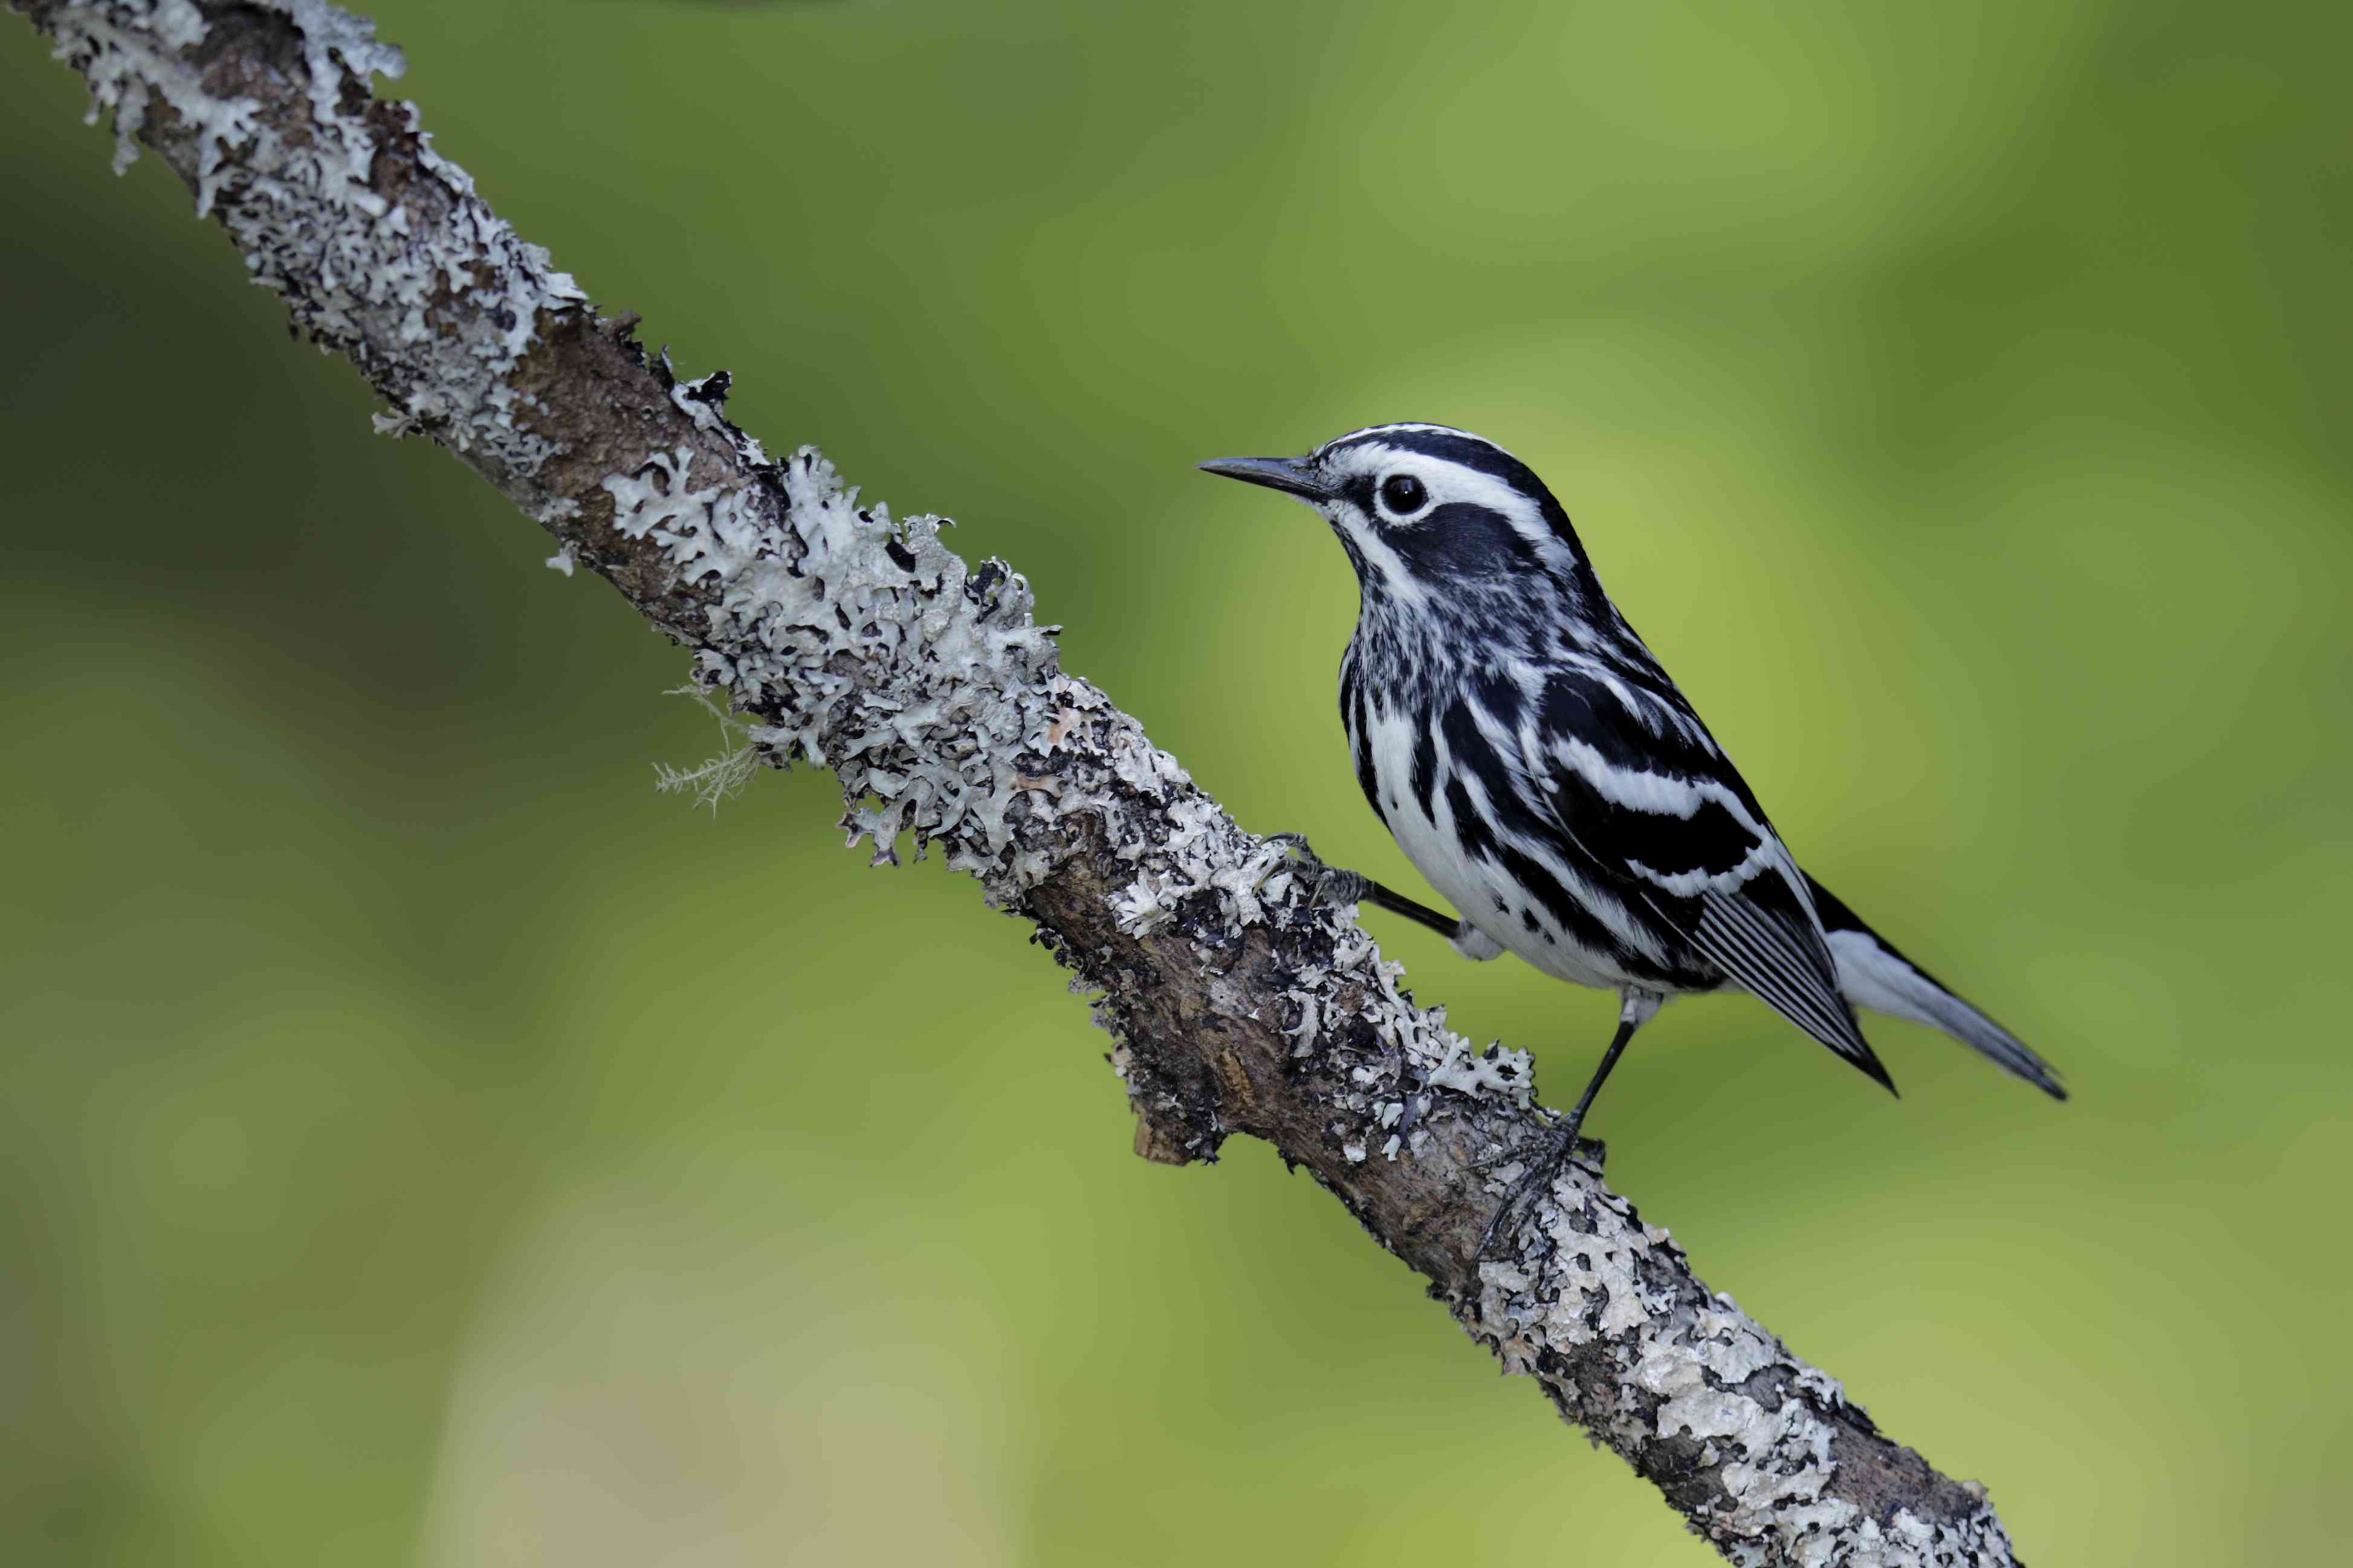 Black-and-white warbler on a branch